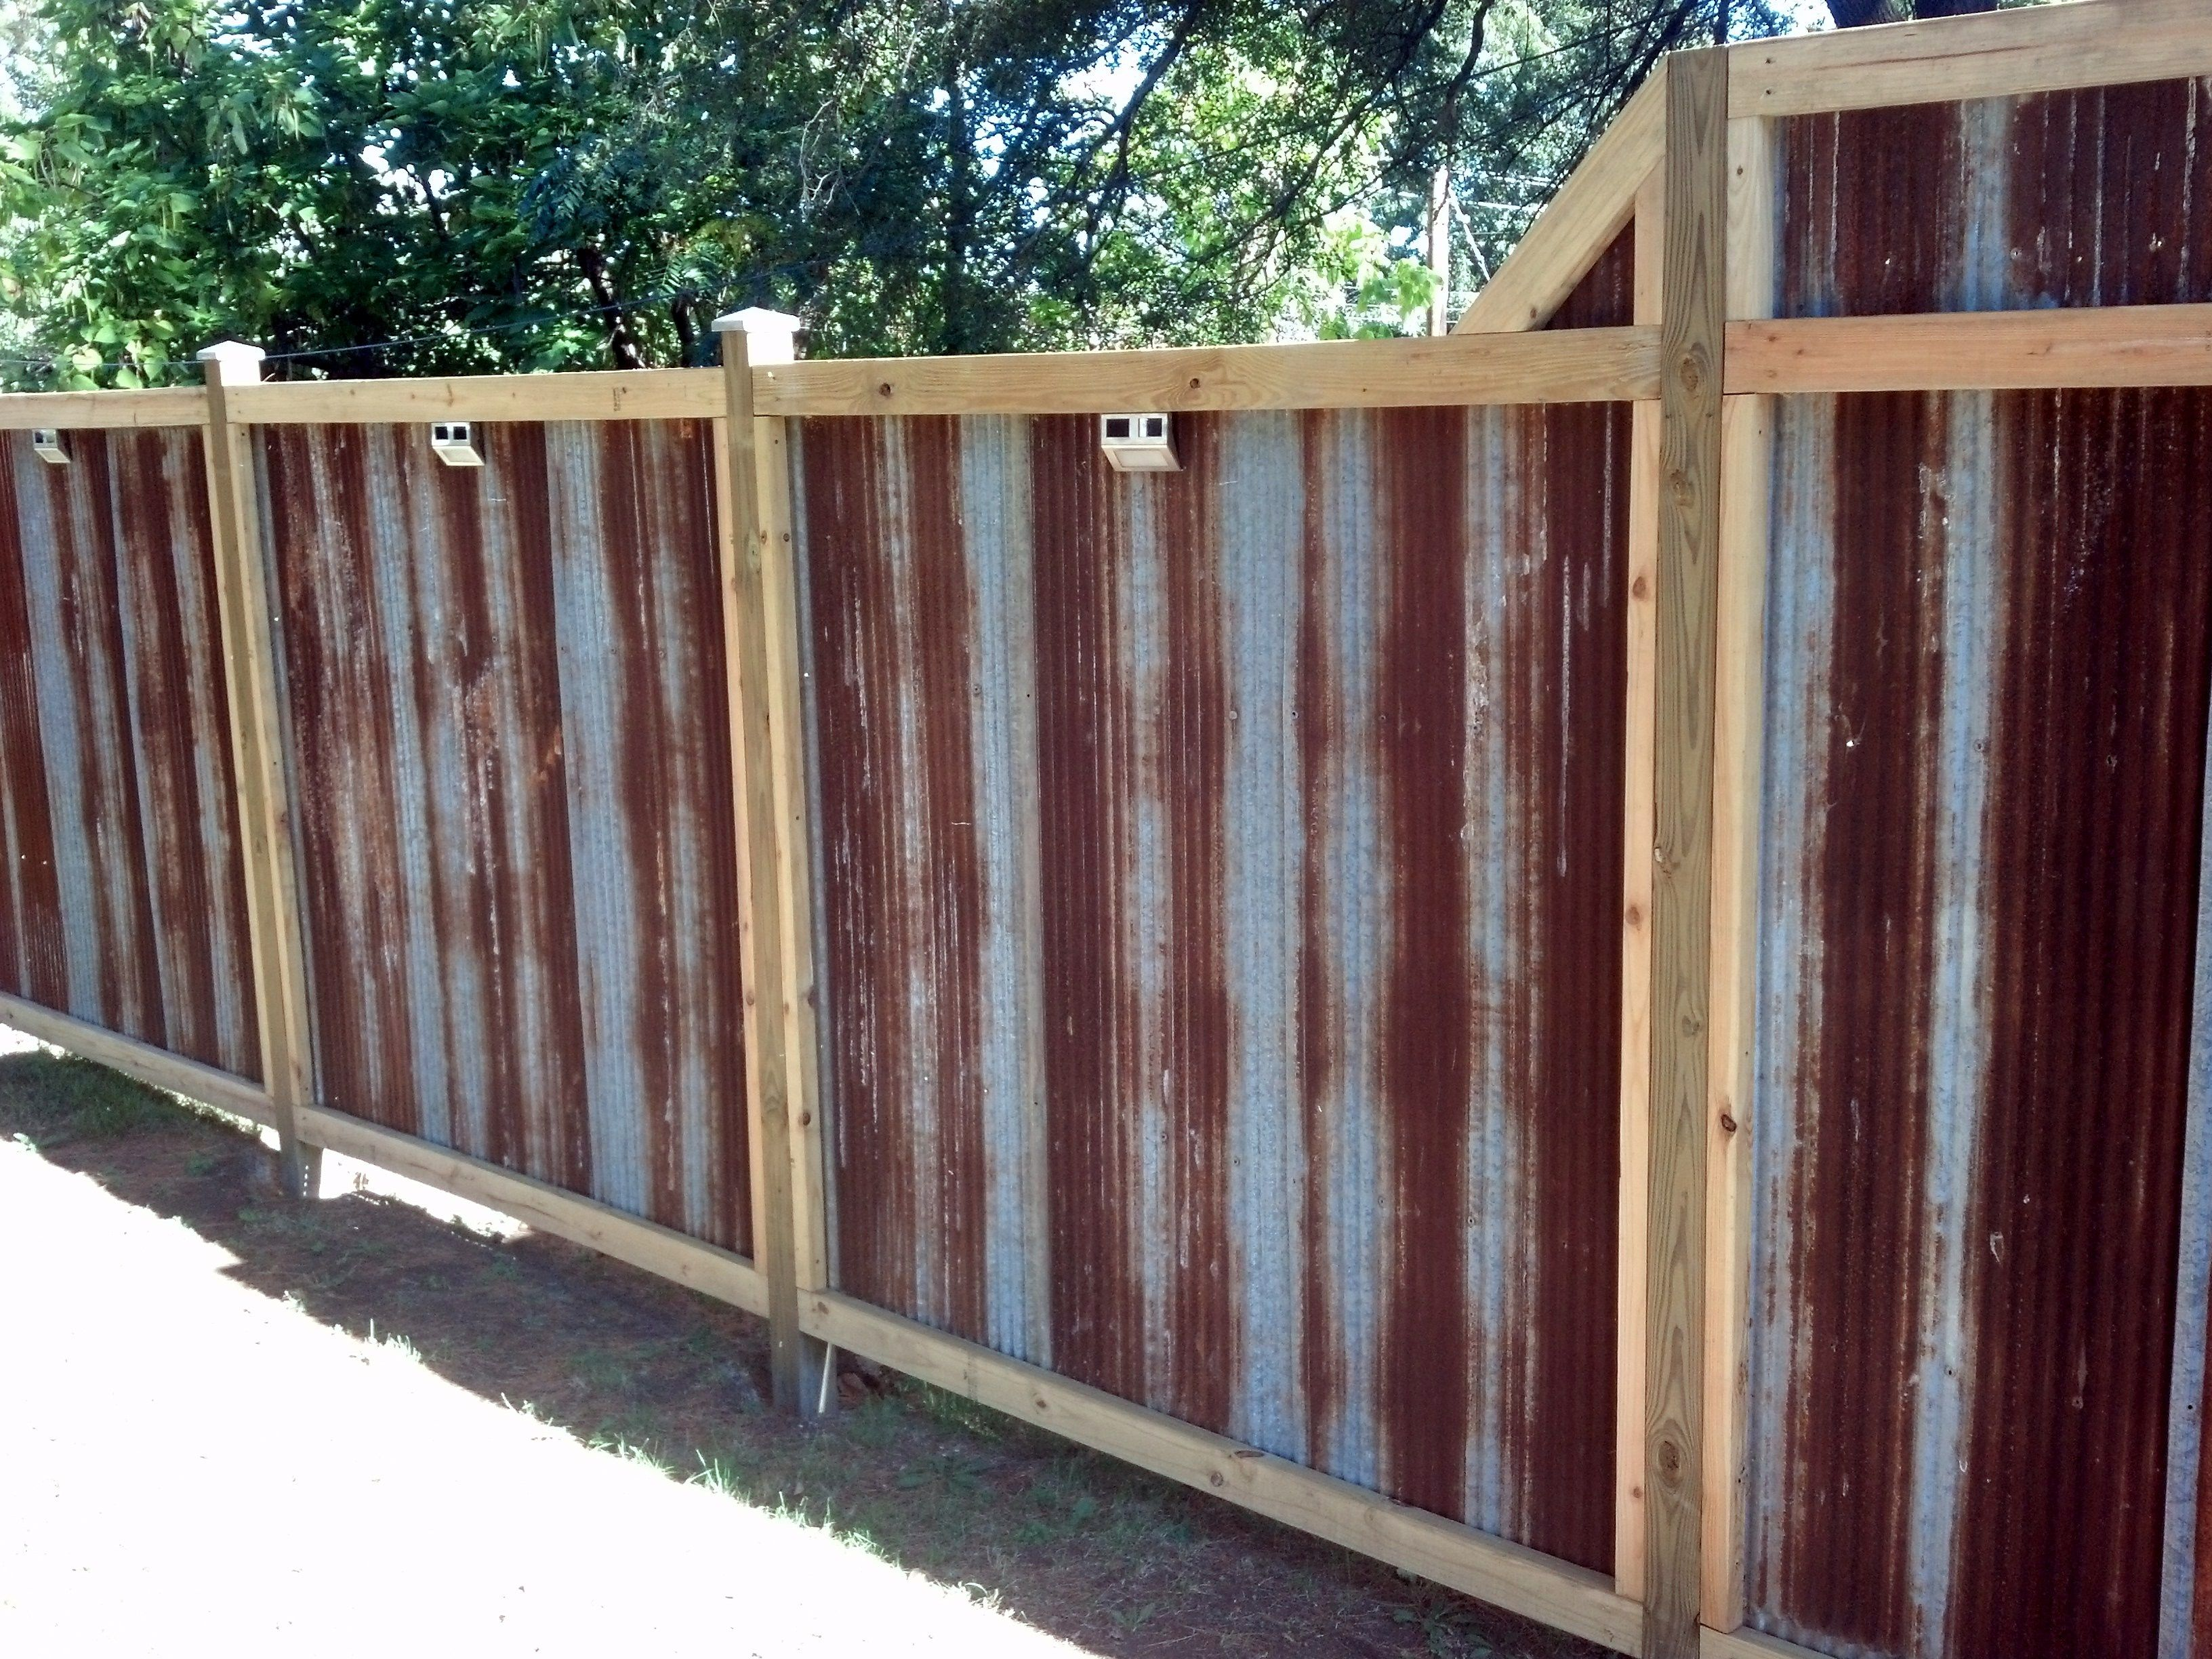 The Rustic Corrugated Tin Fence My Husband And I Built